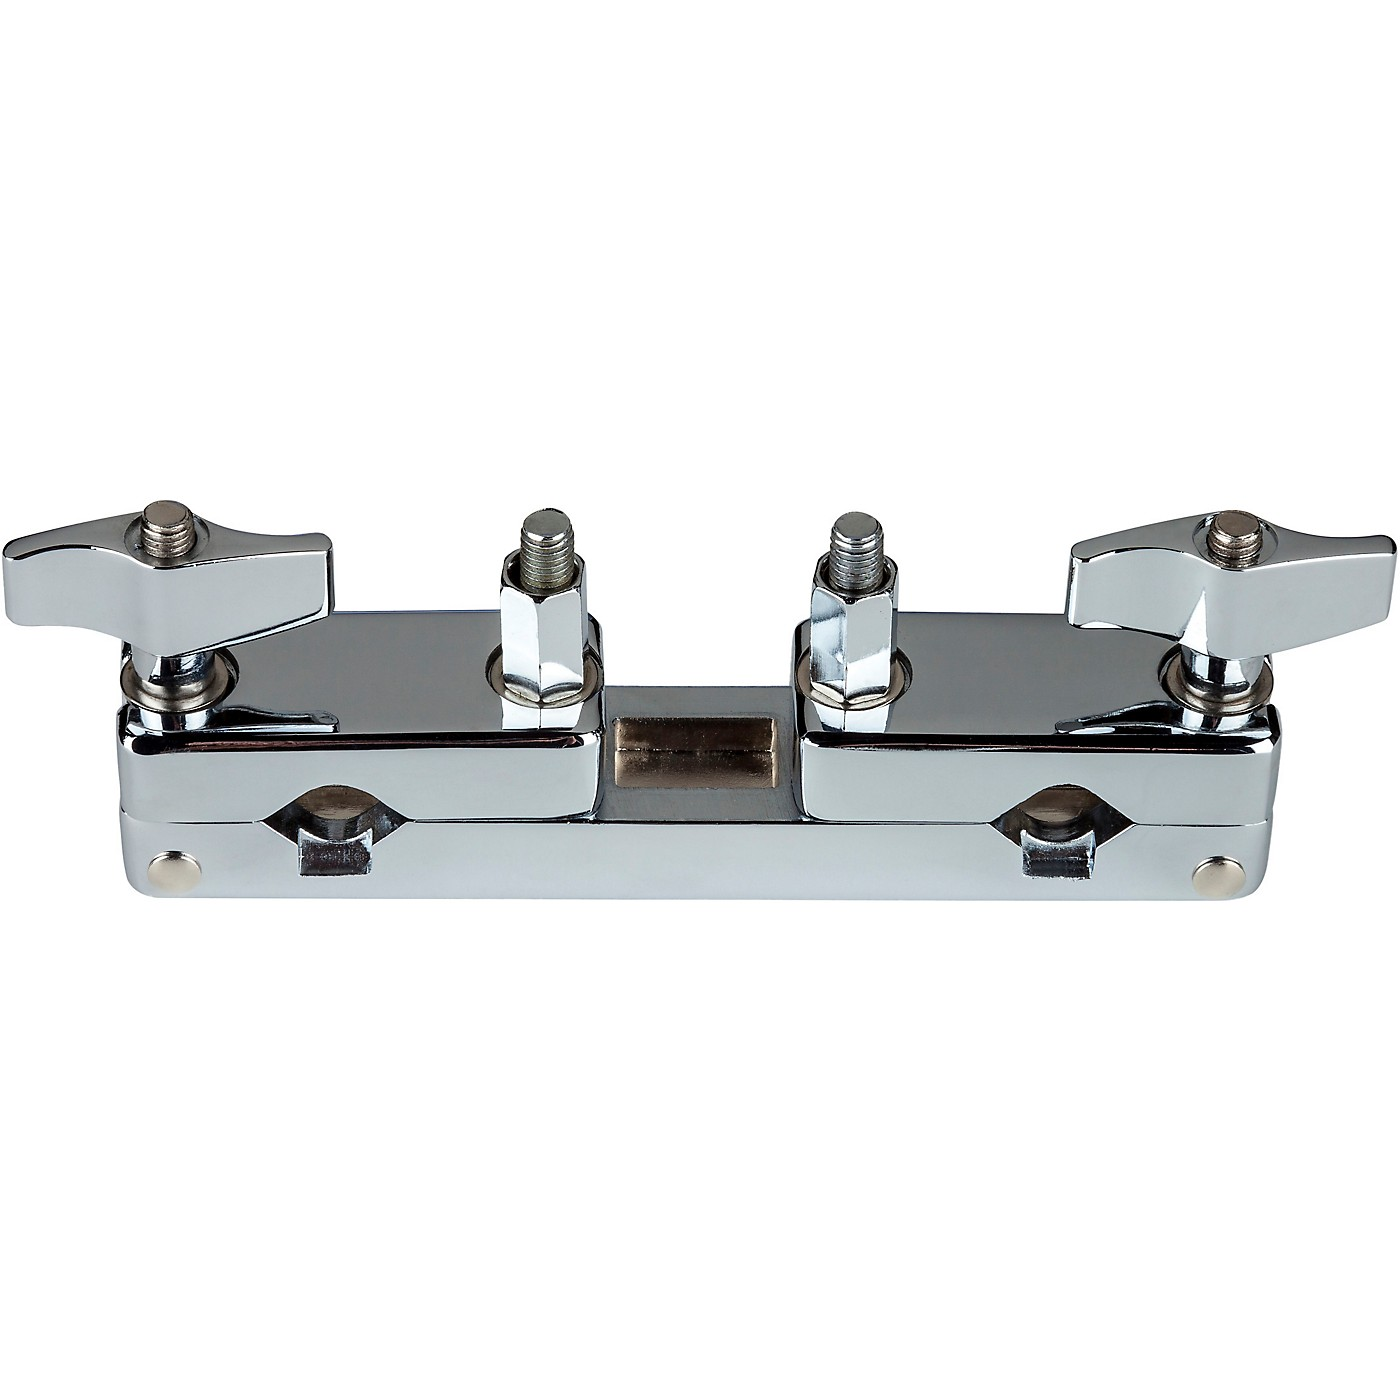 ddrum RX Series Double-Sided Clamp thumbnail